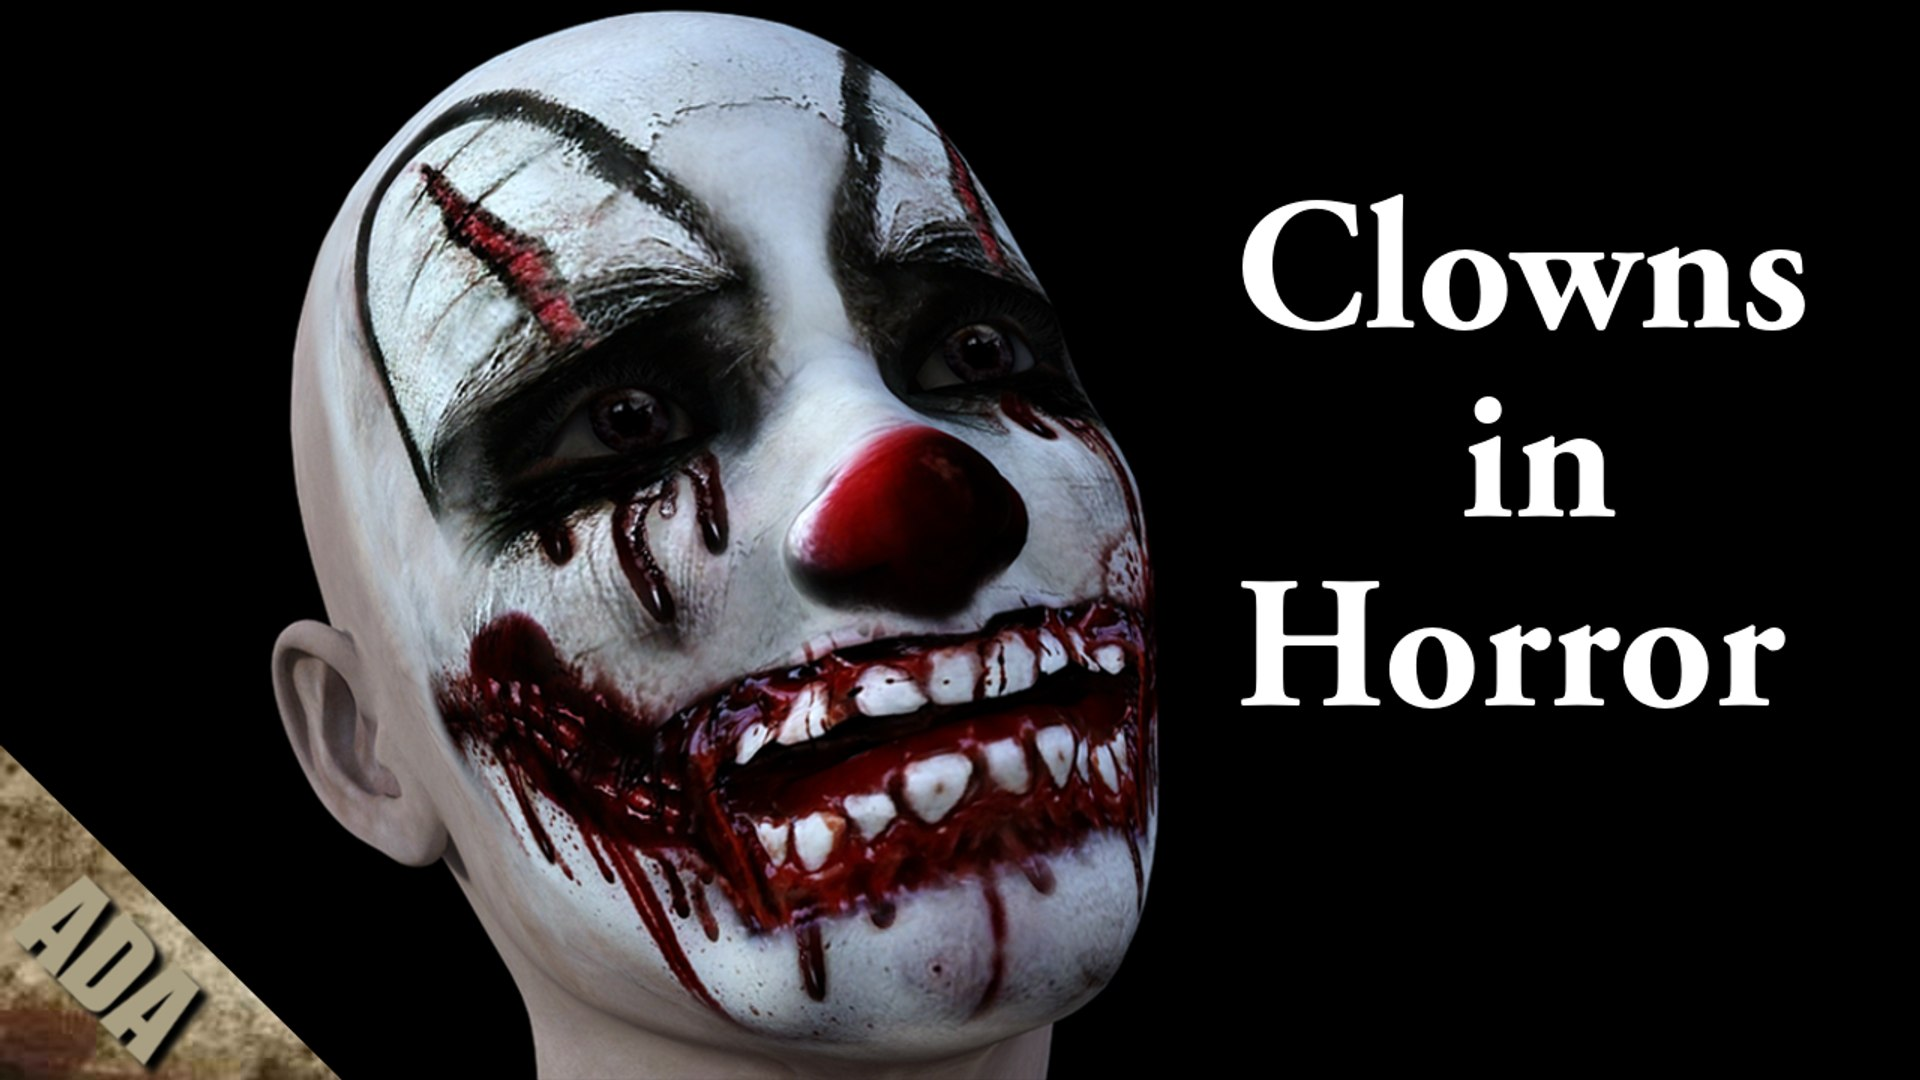 Why is This a Thing? Creepy Clowns in Horror Movies